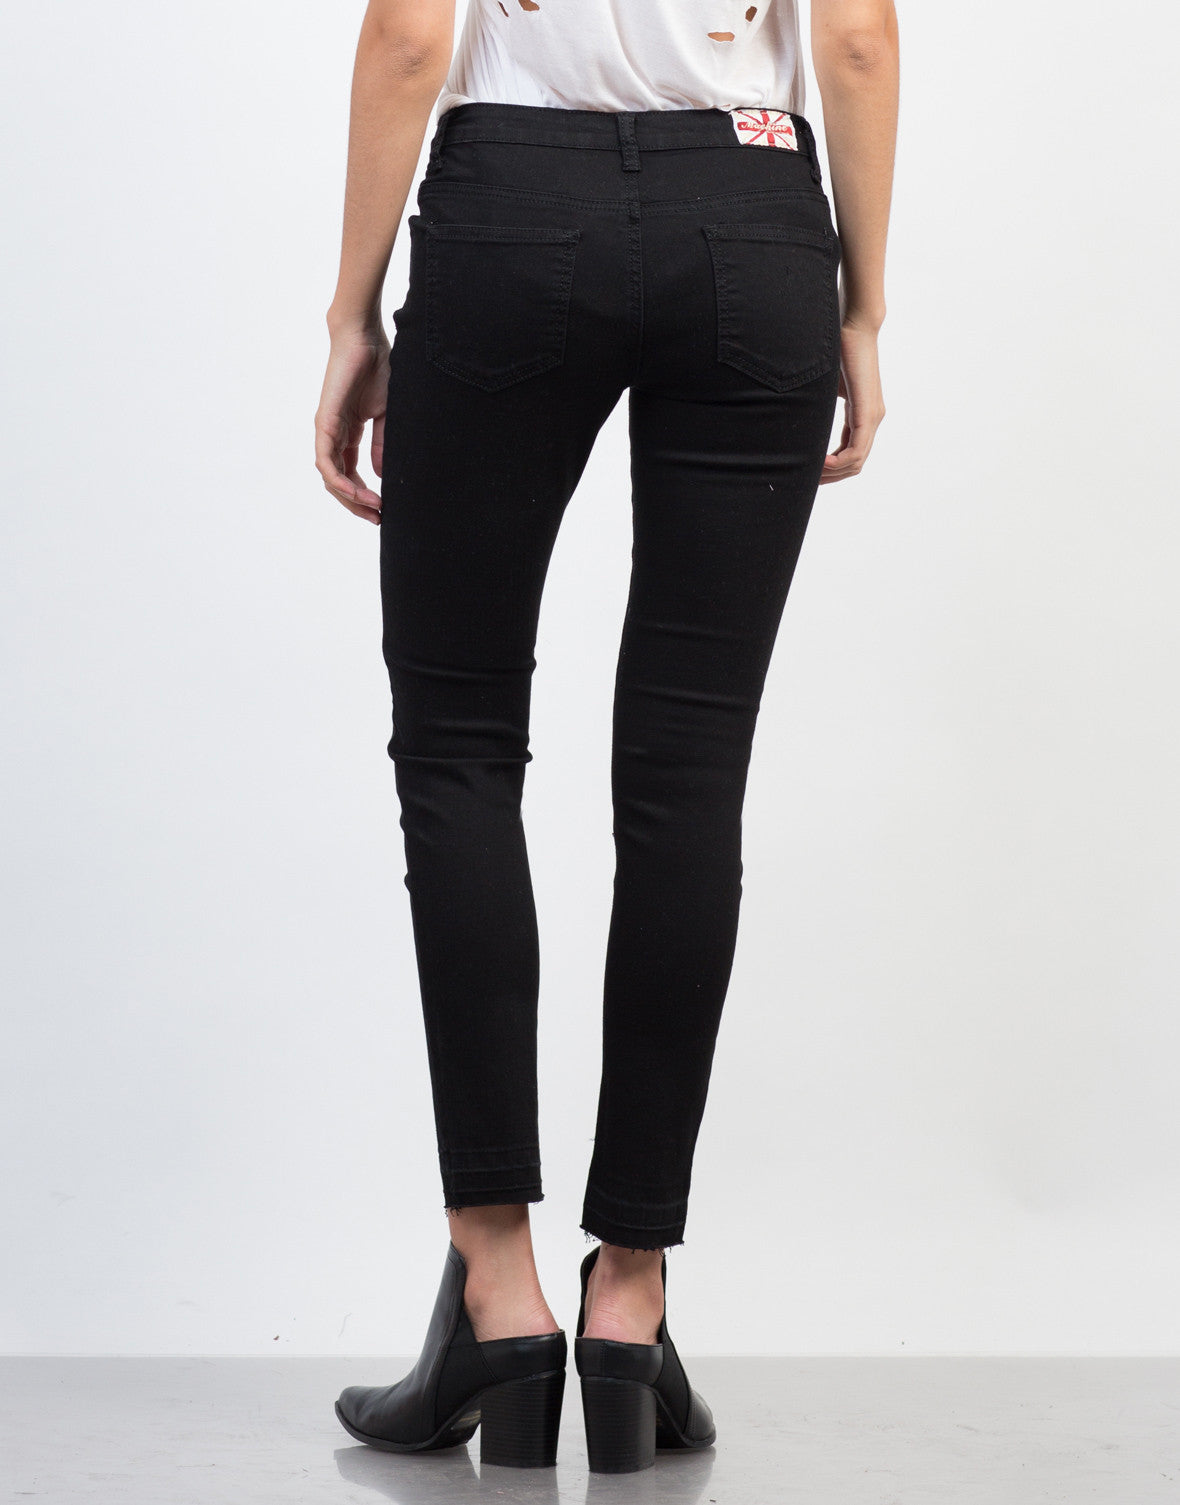 Back View of Release Those Hemlines Skinny Jeans